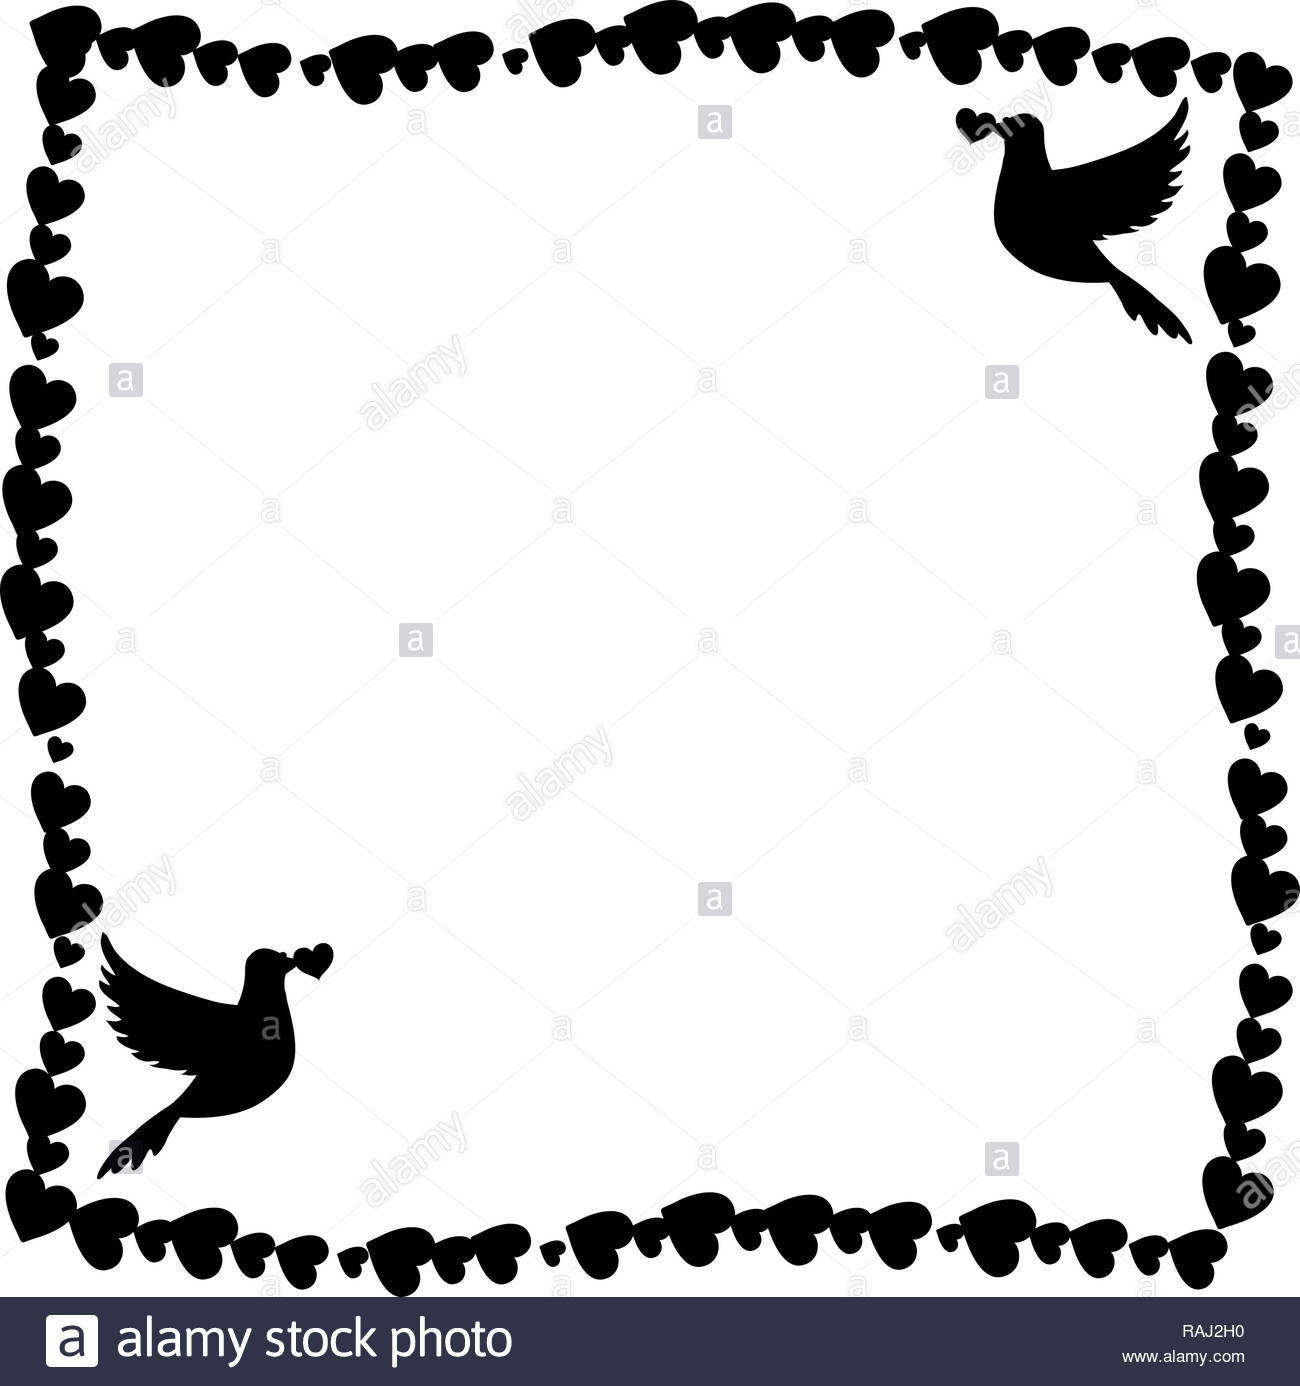 Clip Art And Illustration Birds Black and White Stock Photos.